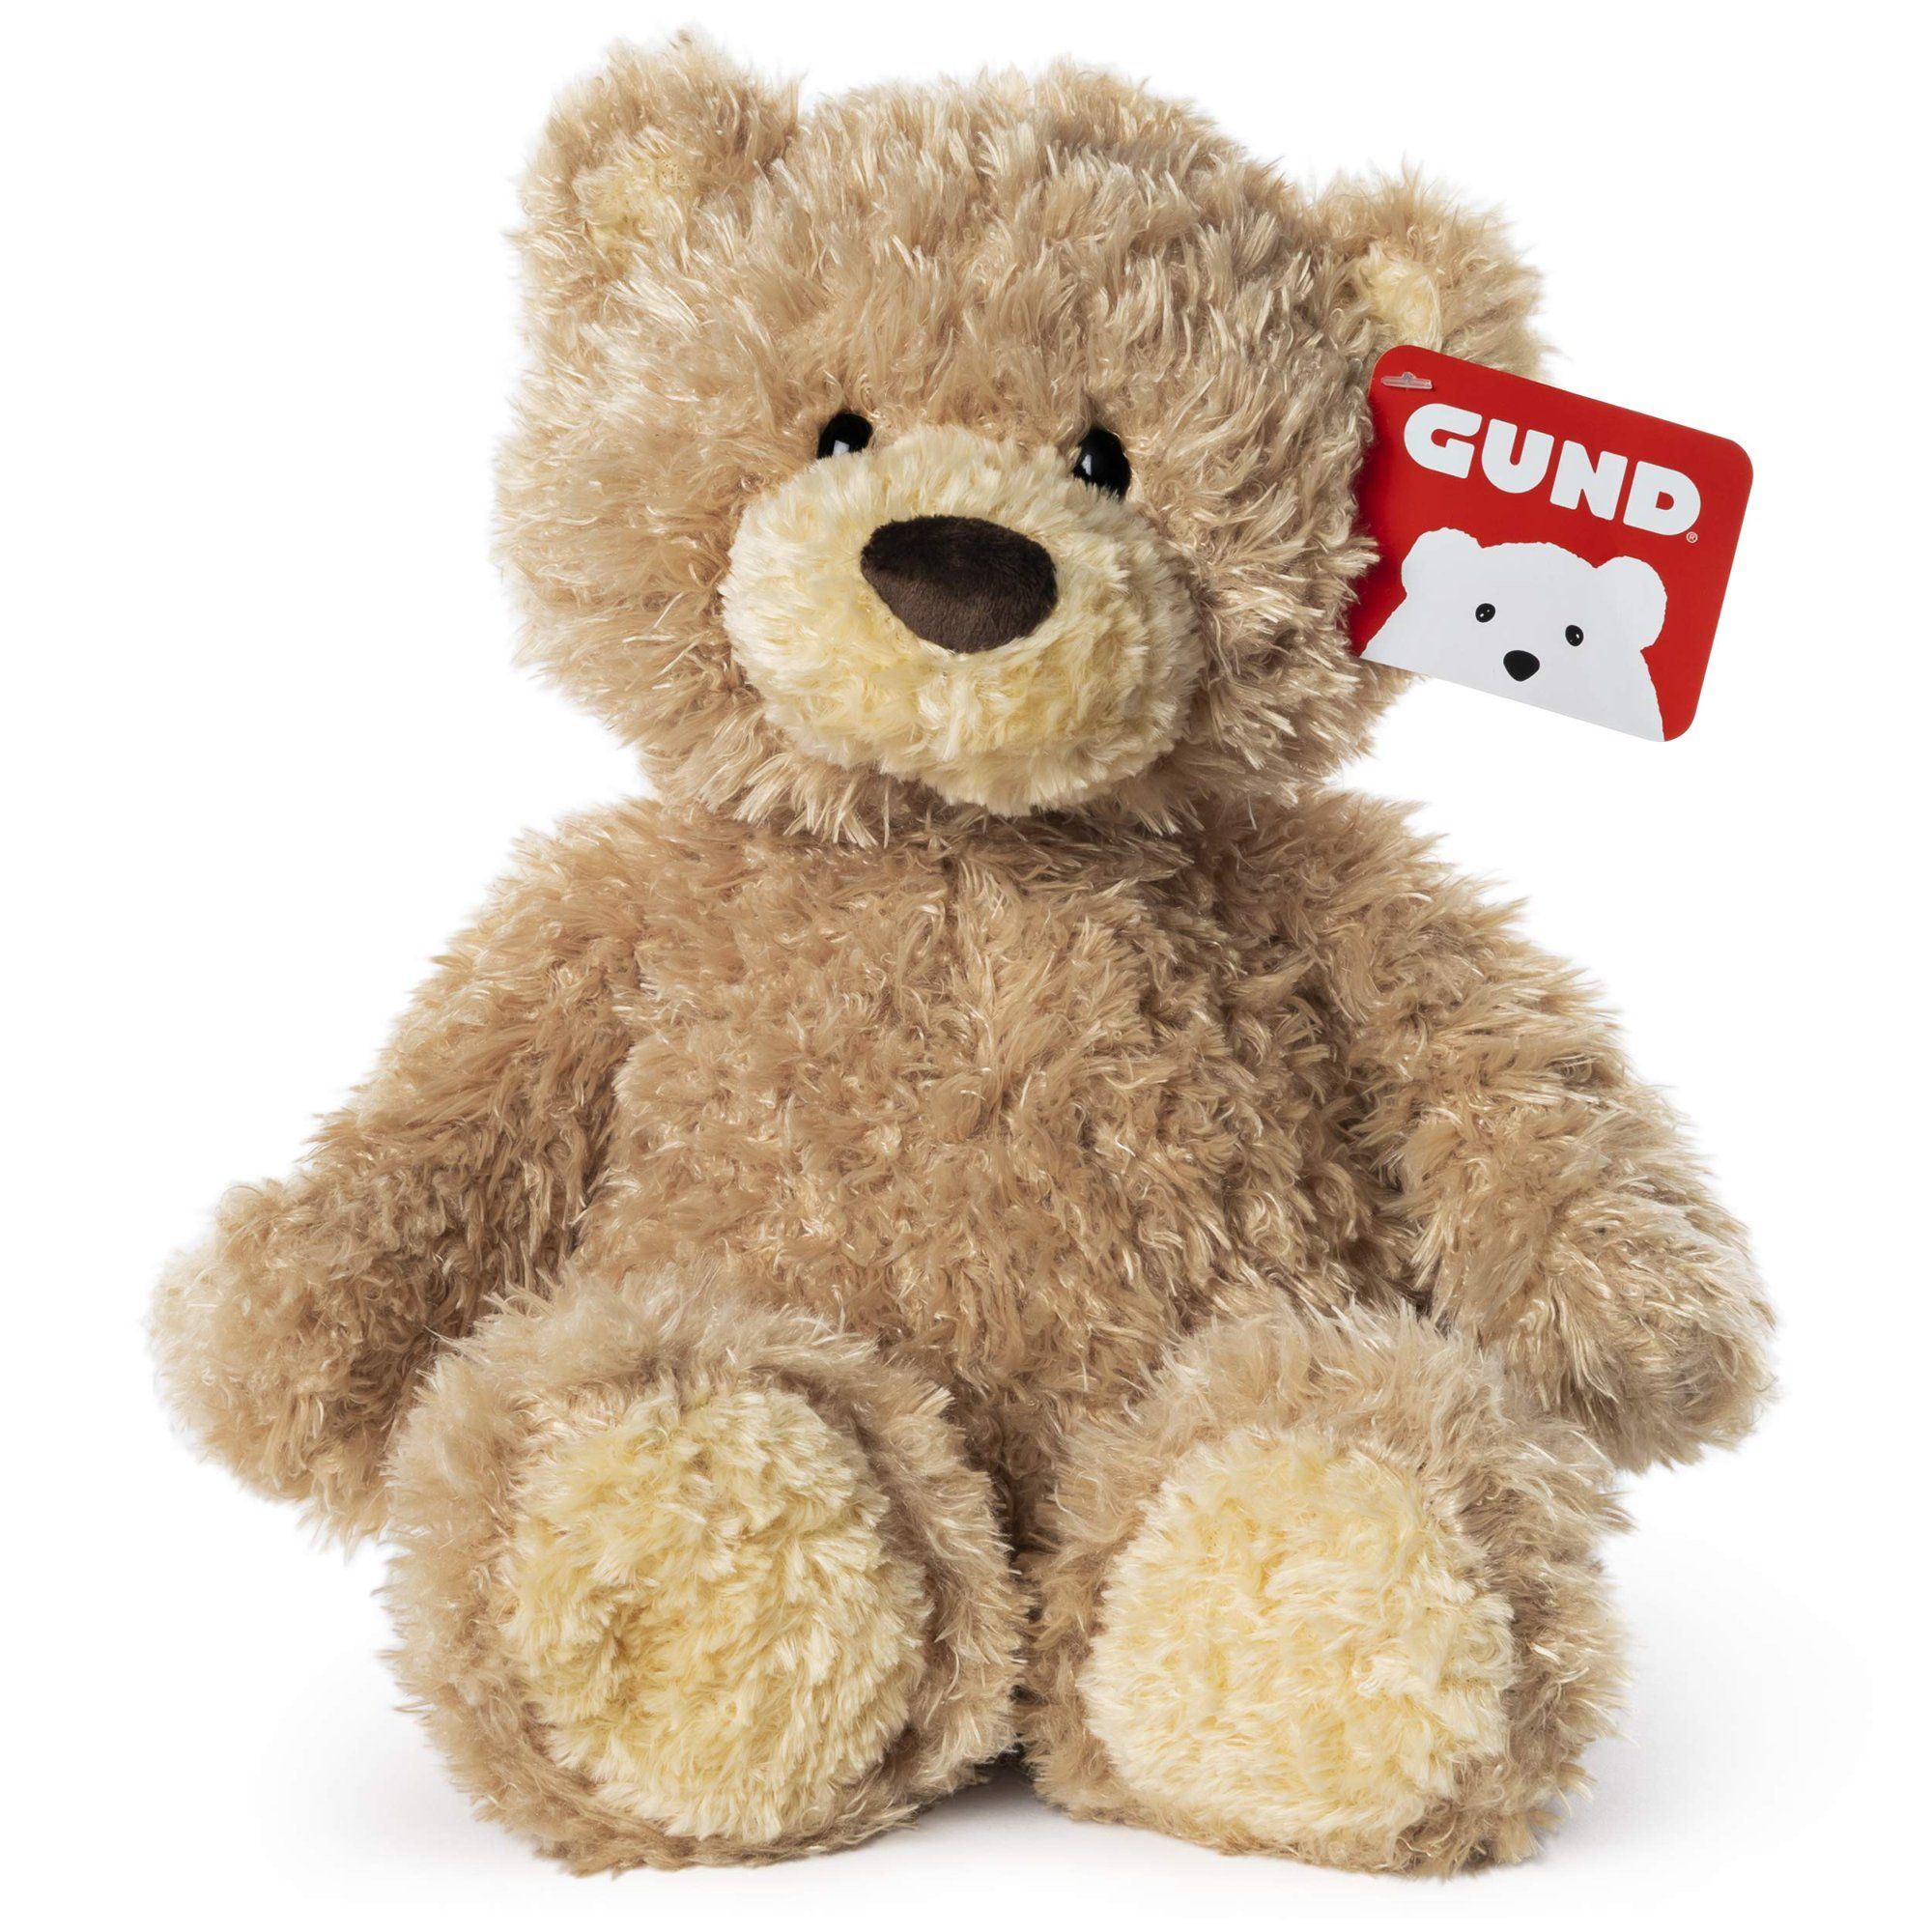 "Gund Stitchie 14"" Bear Plush in 2020 Bear"